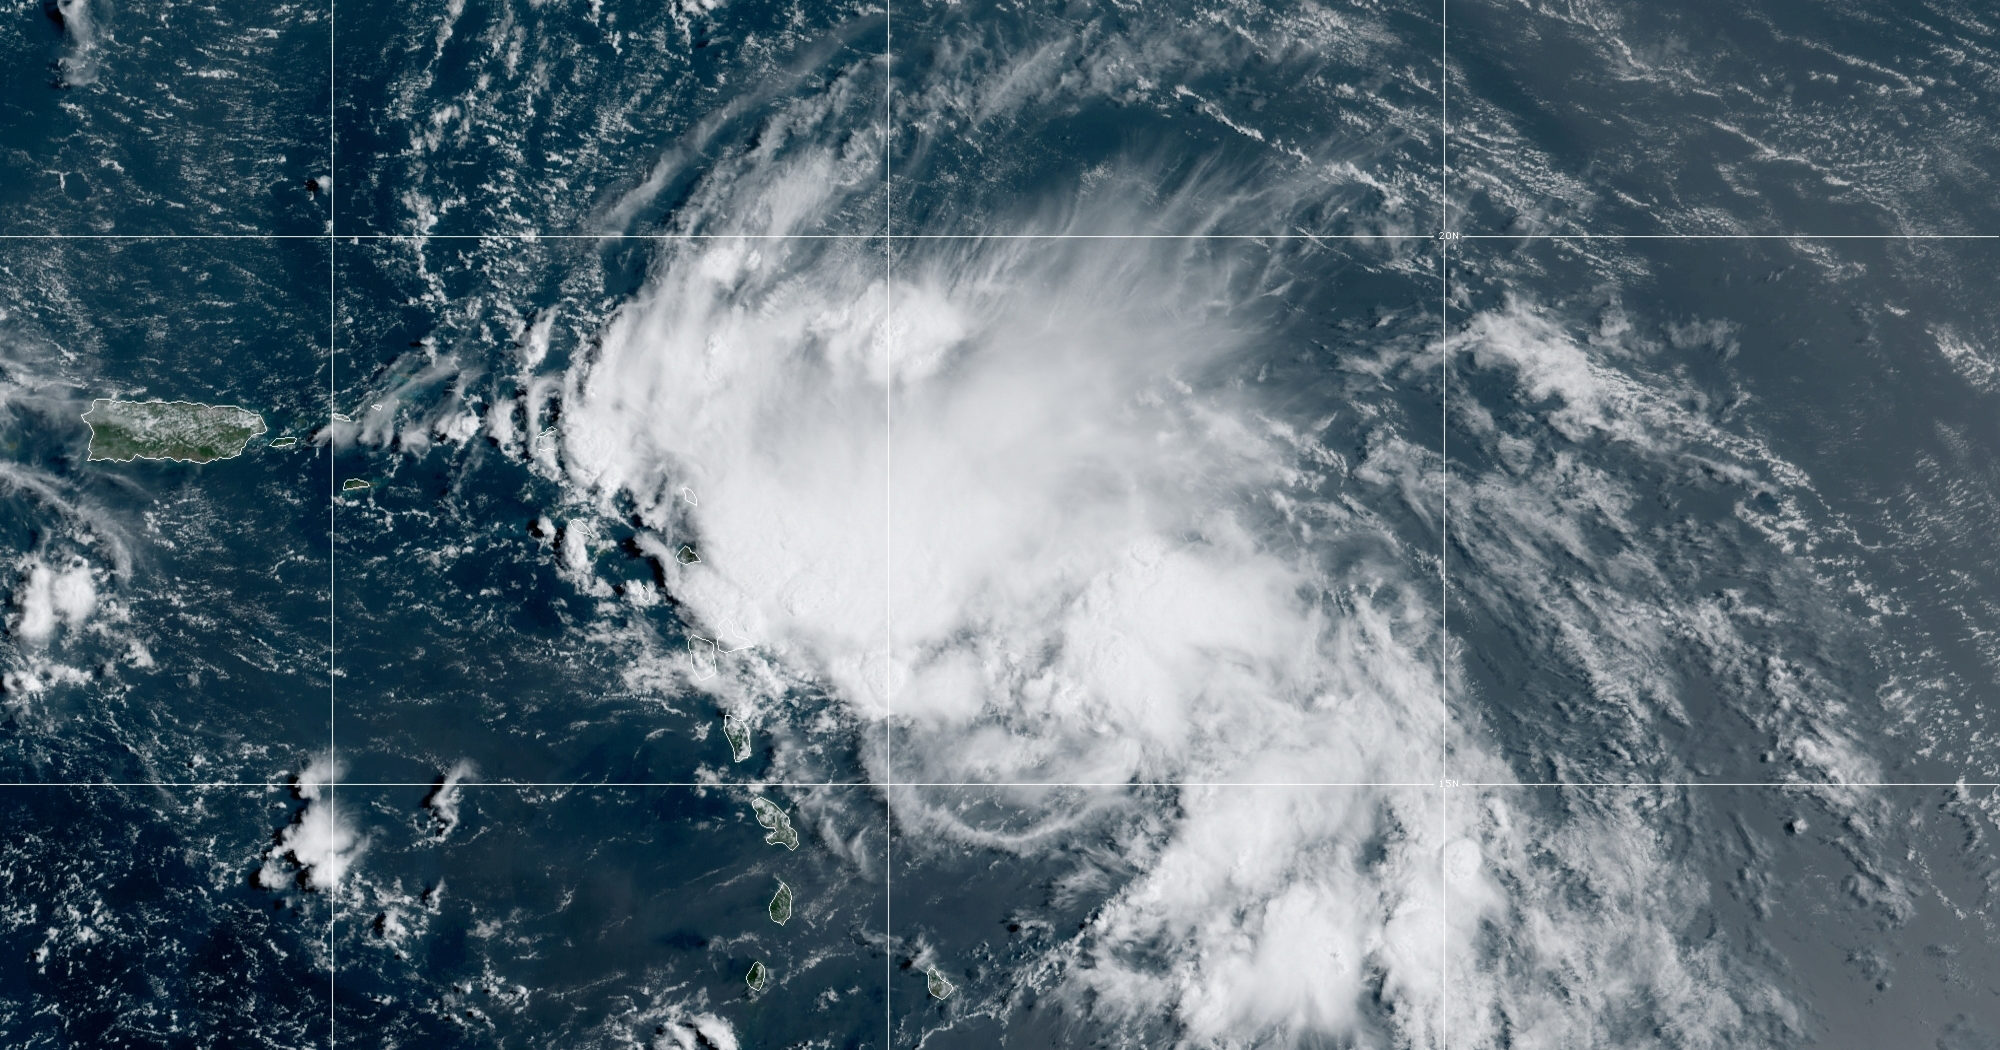 This satellite image released by the National Oceanic and Atmospheric Administration shows Tropical Storm Laura in the Atlantic Ocean on Aug. 21, 2020. Laura formed Friday in the eastern Caribbean and forecasters said it poses a potential hurricane threat to Florida and the U.S. Gulf Coast. A second storm also may hit the U.S. after running into Mexico's Yucatan Peninsula.